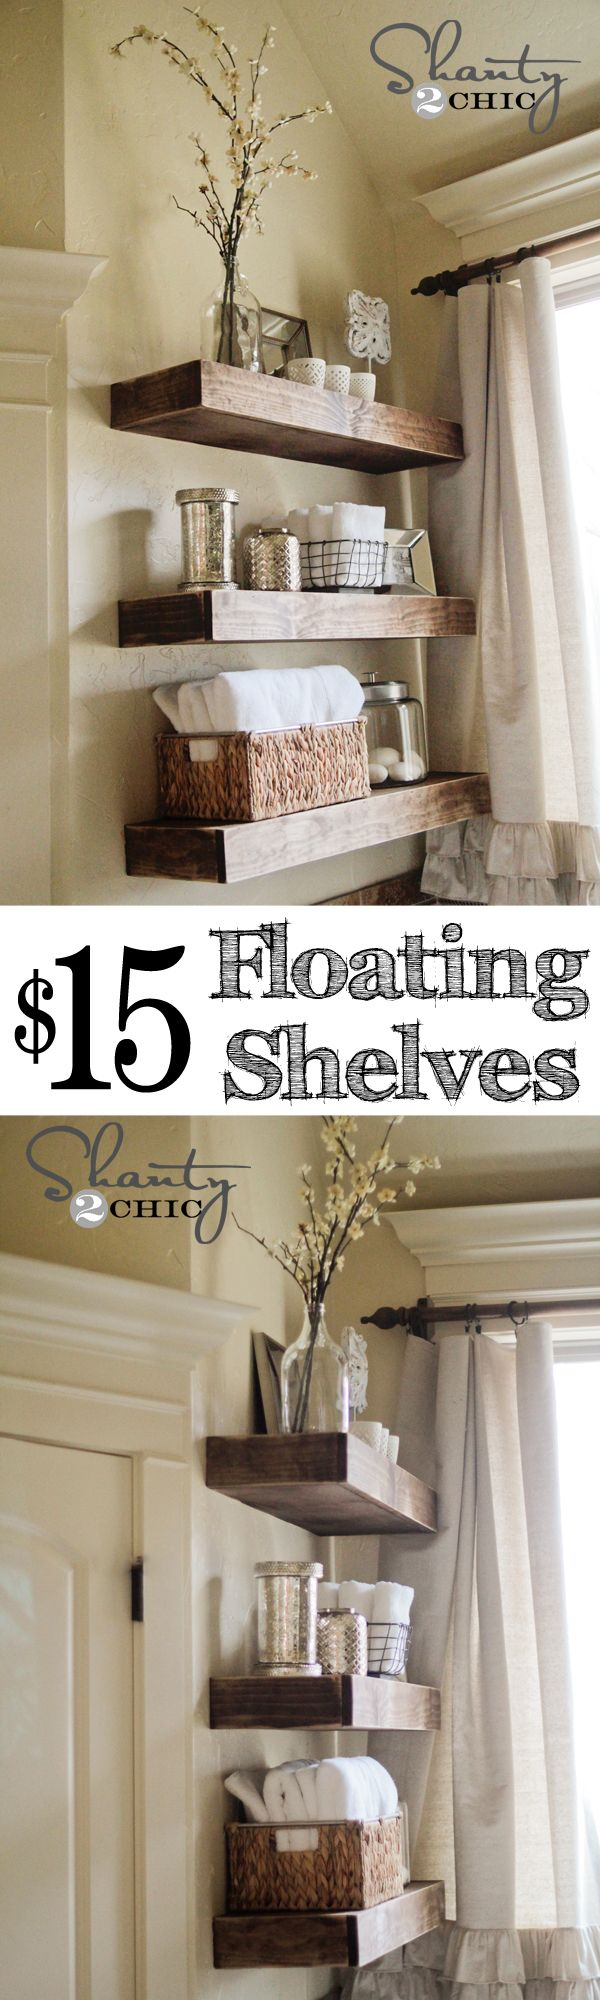 Bathroom decor ideas diy - Easy Diy Floating Shelves